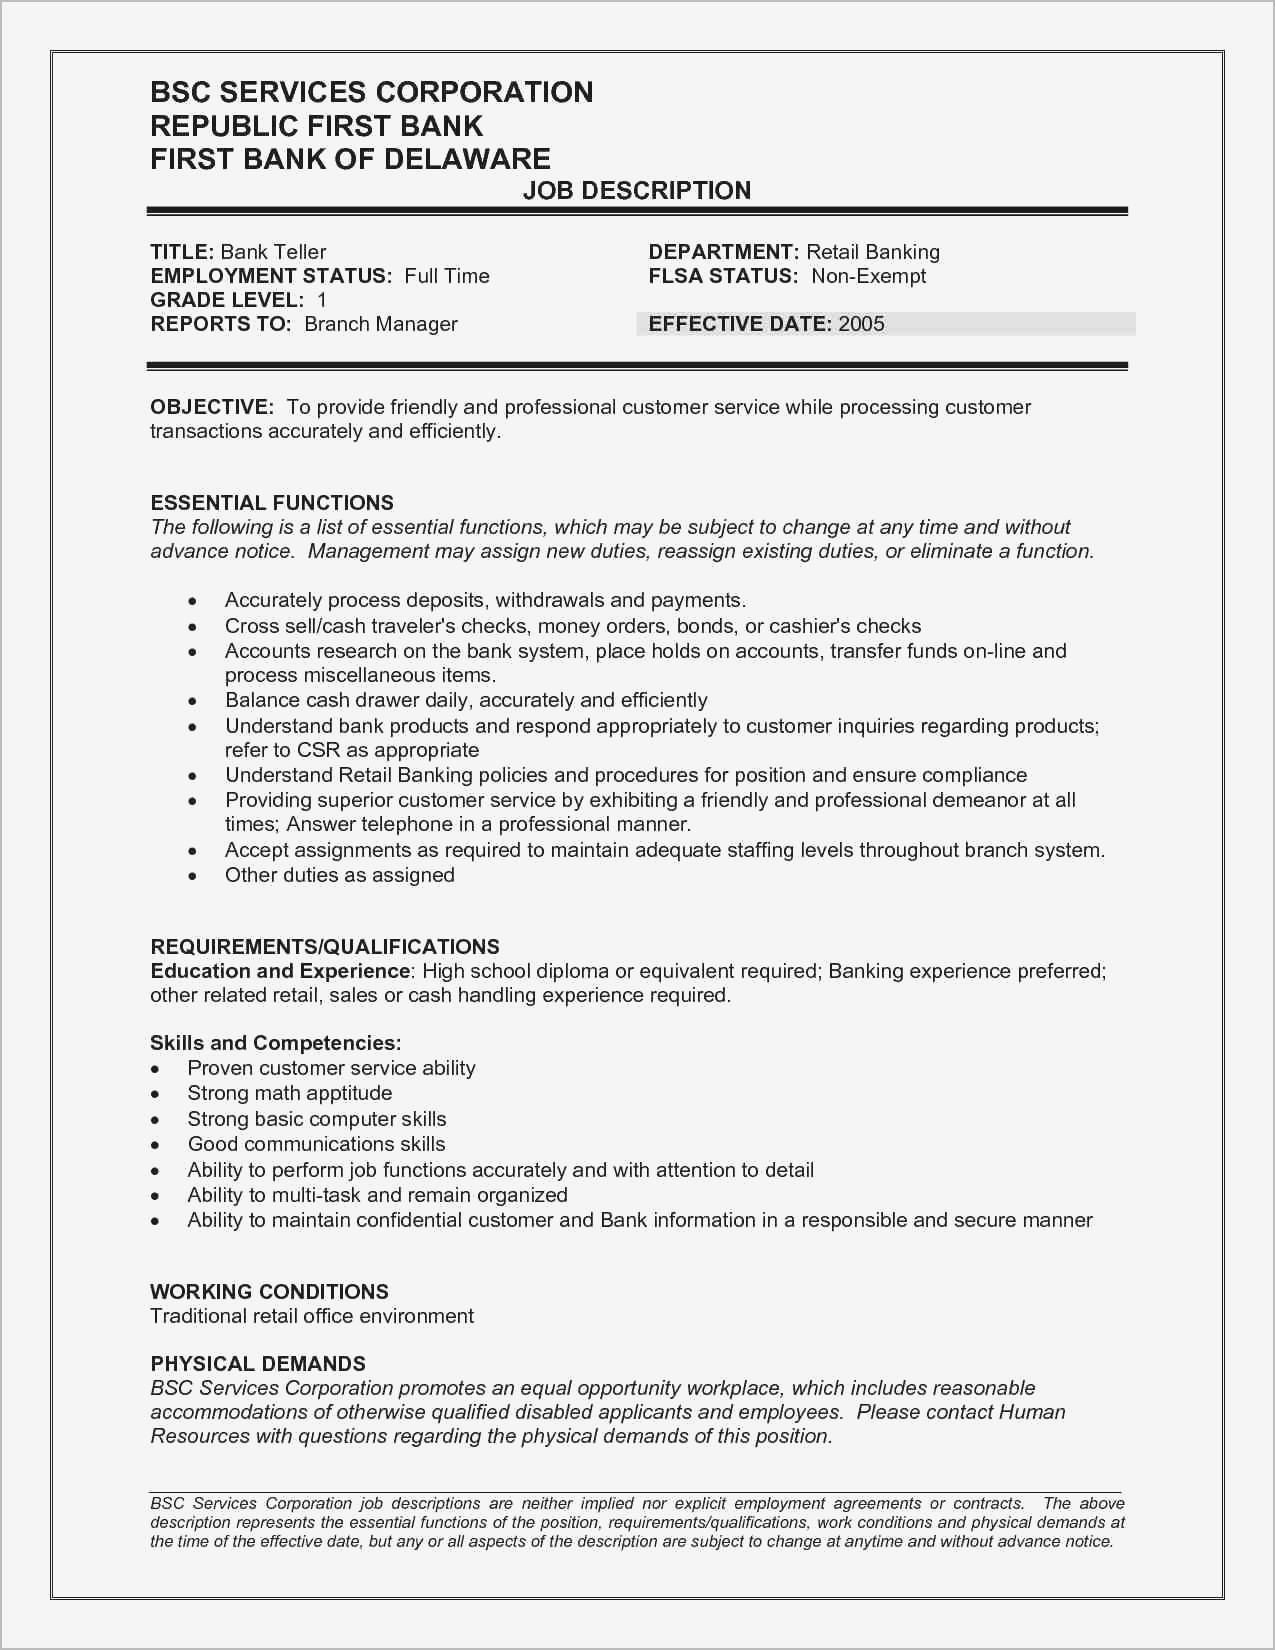 List Of Core Competencies Resume Examples - Basic Resume Examples for Retail Jobs Resume Resume Examples